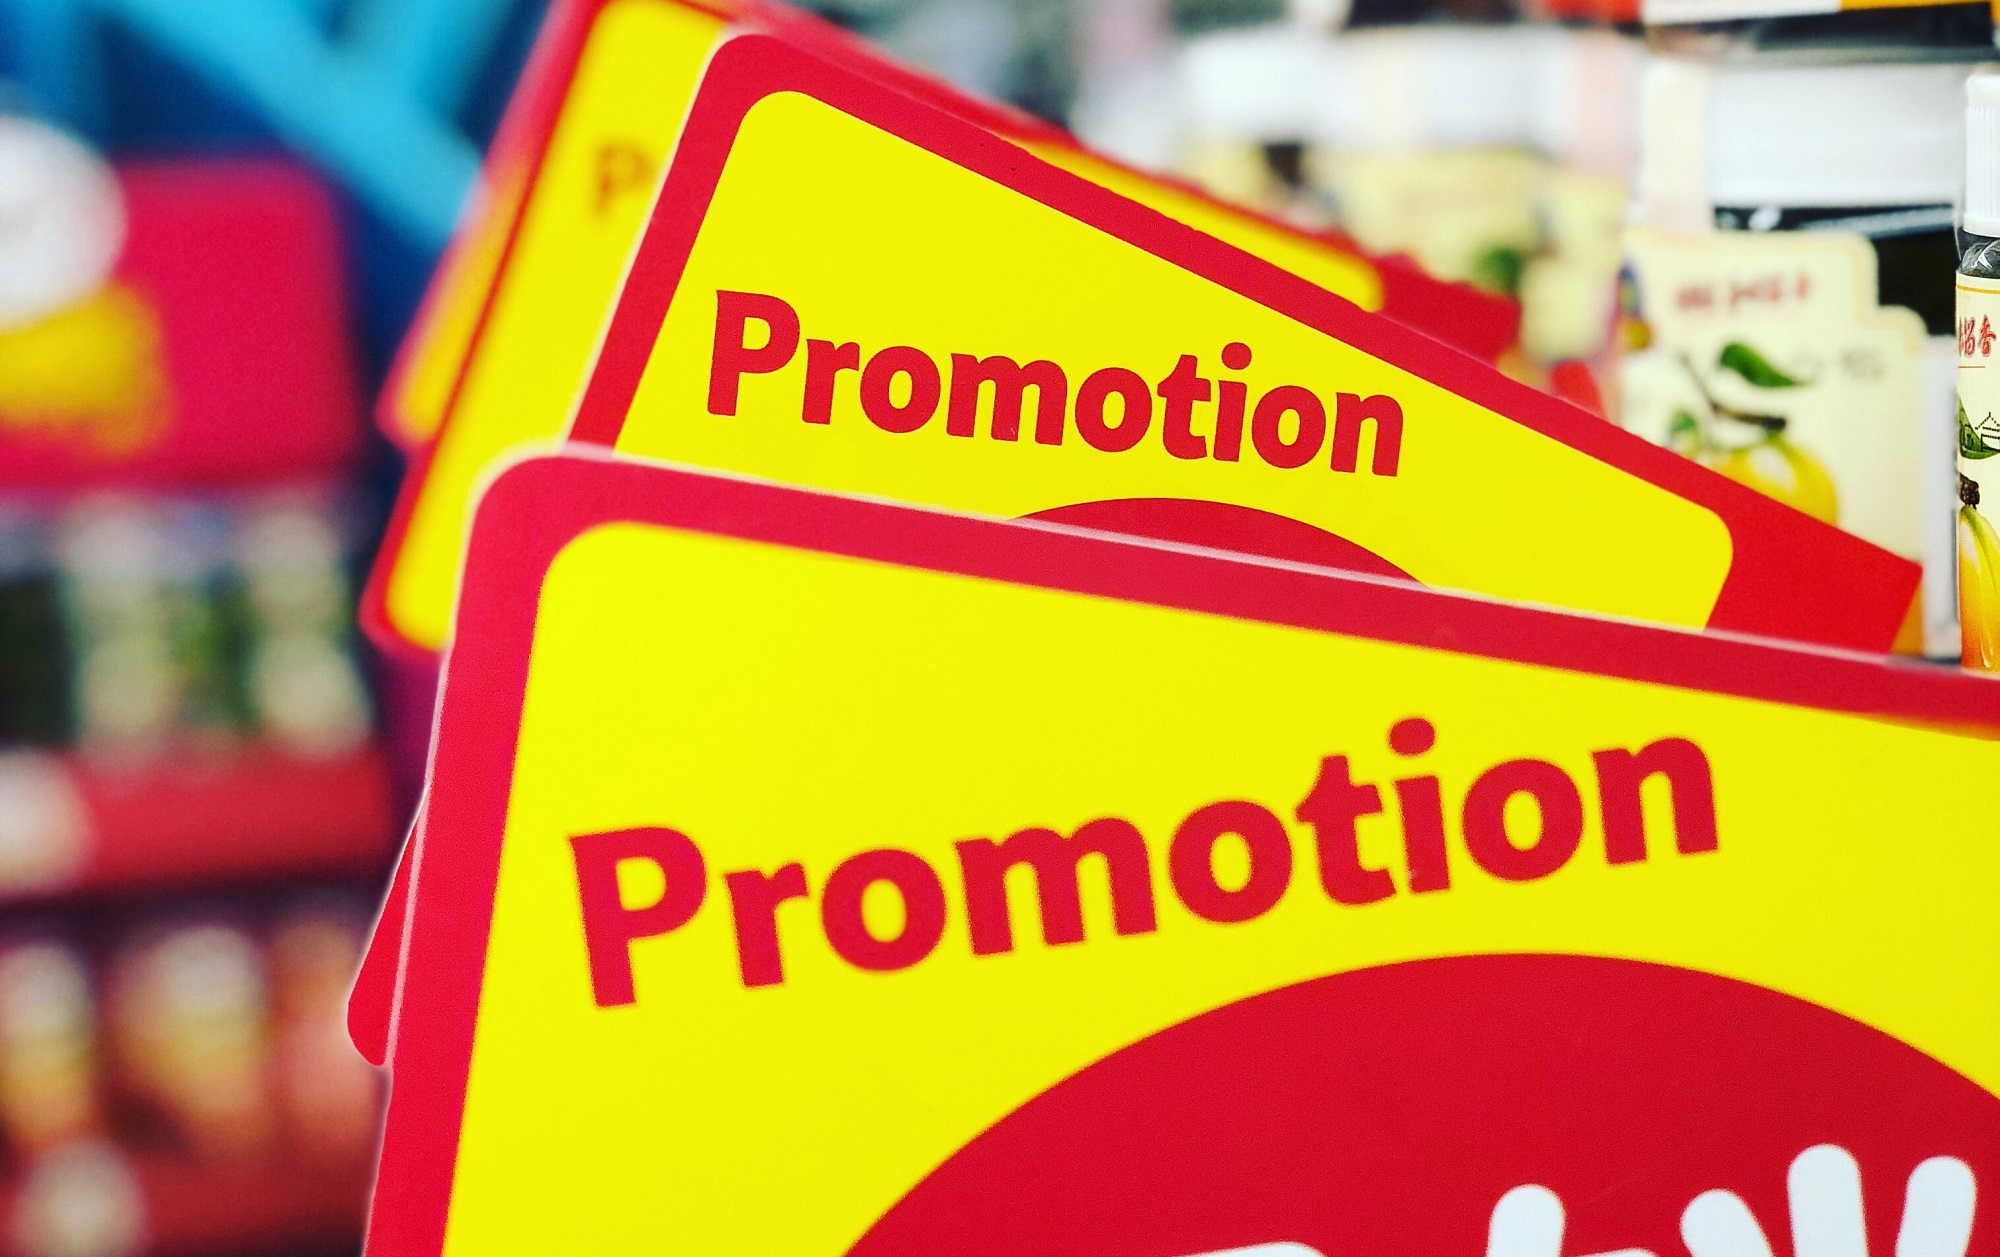 numerous yellow promotion signs indicates over product promotion which may cause amazon return